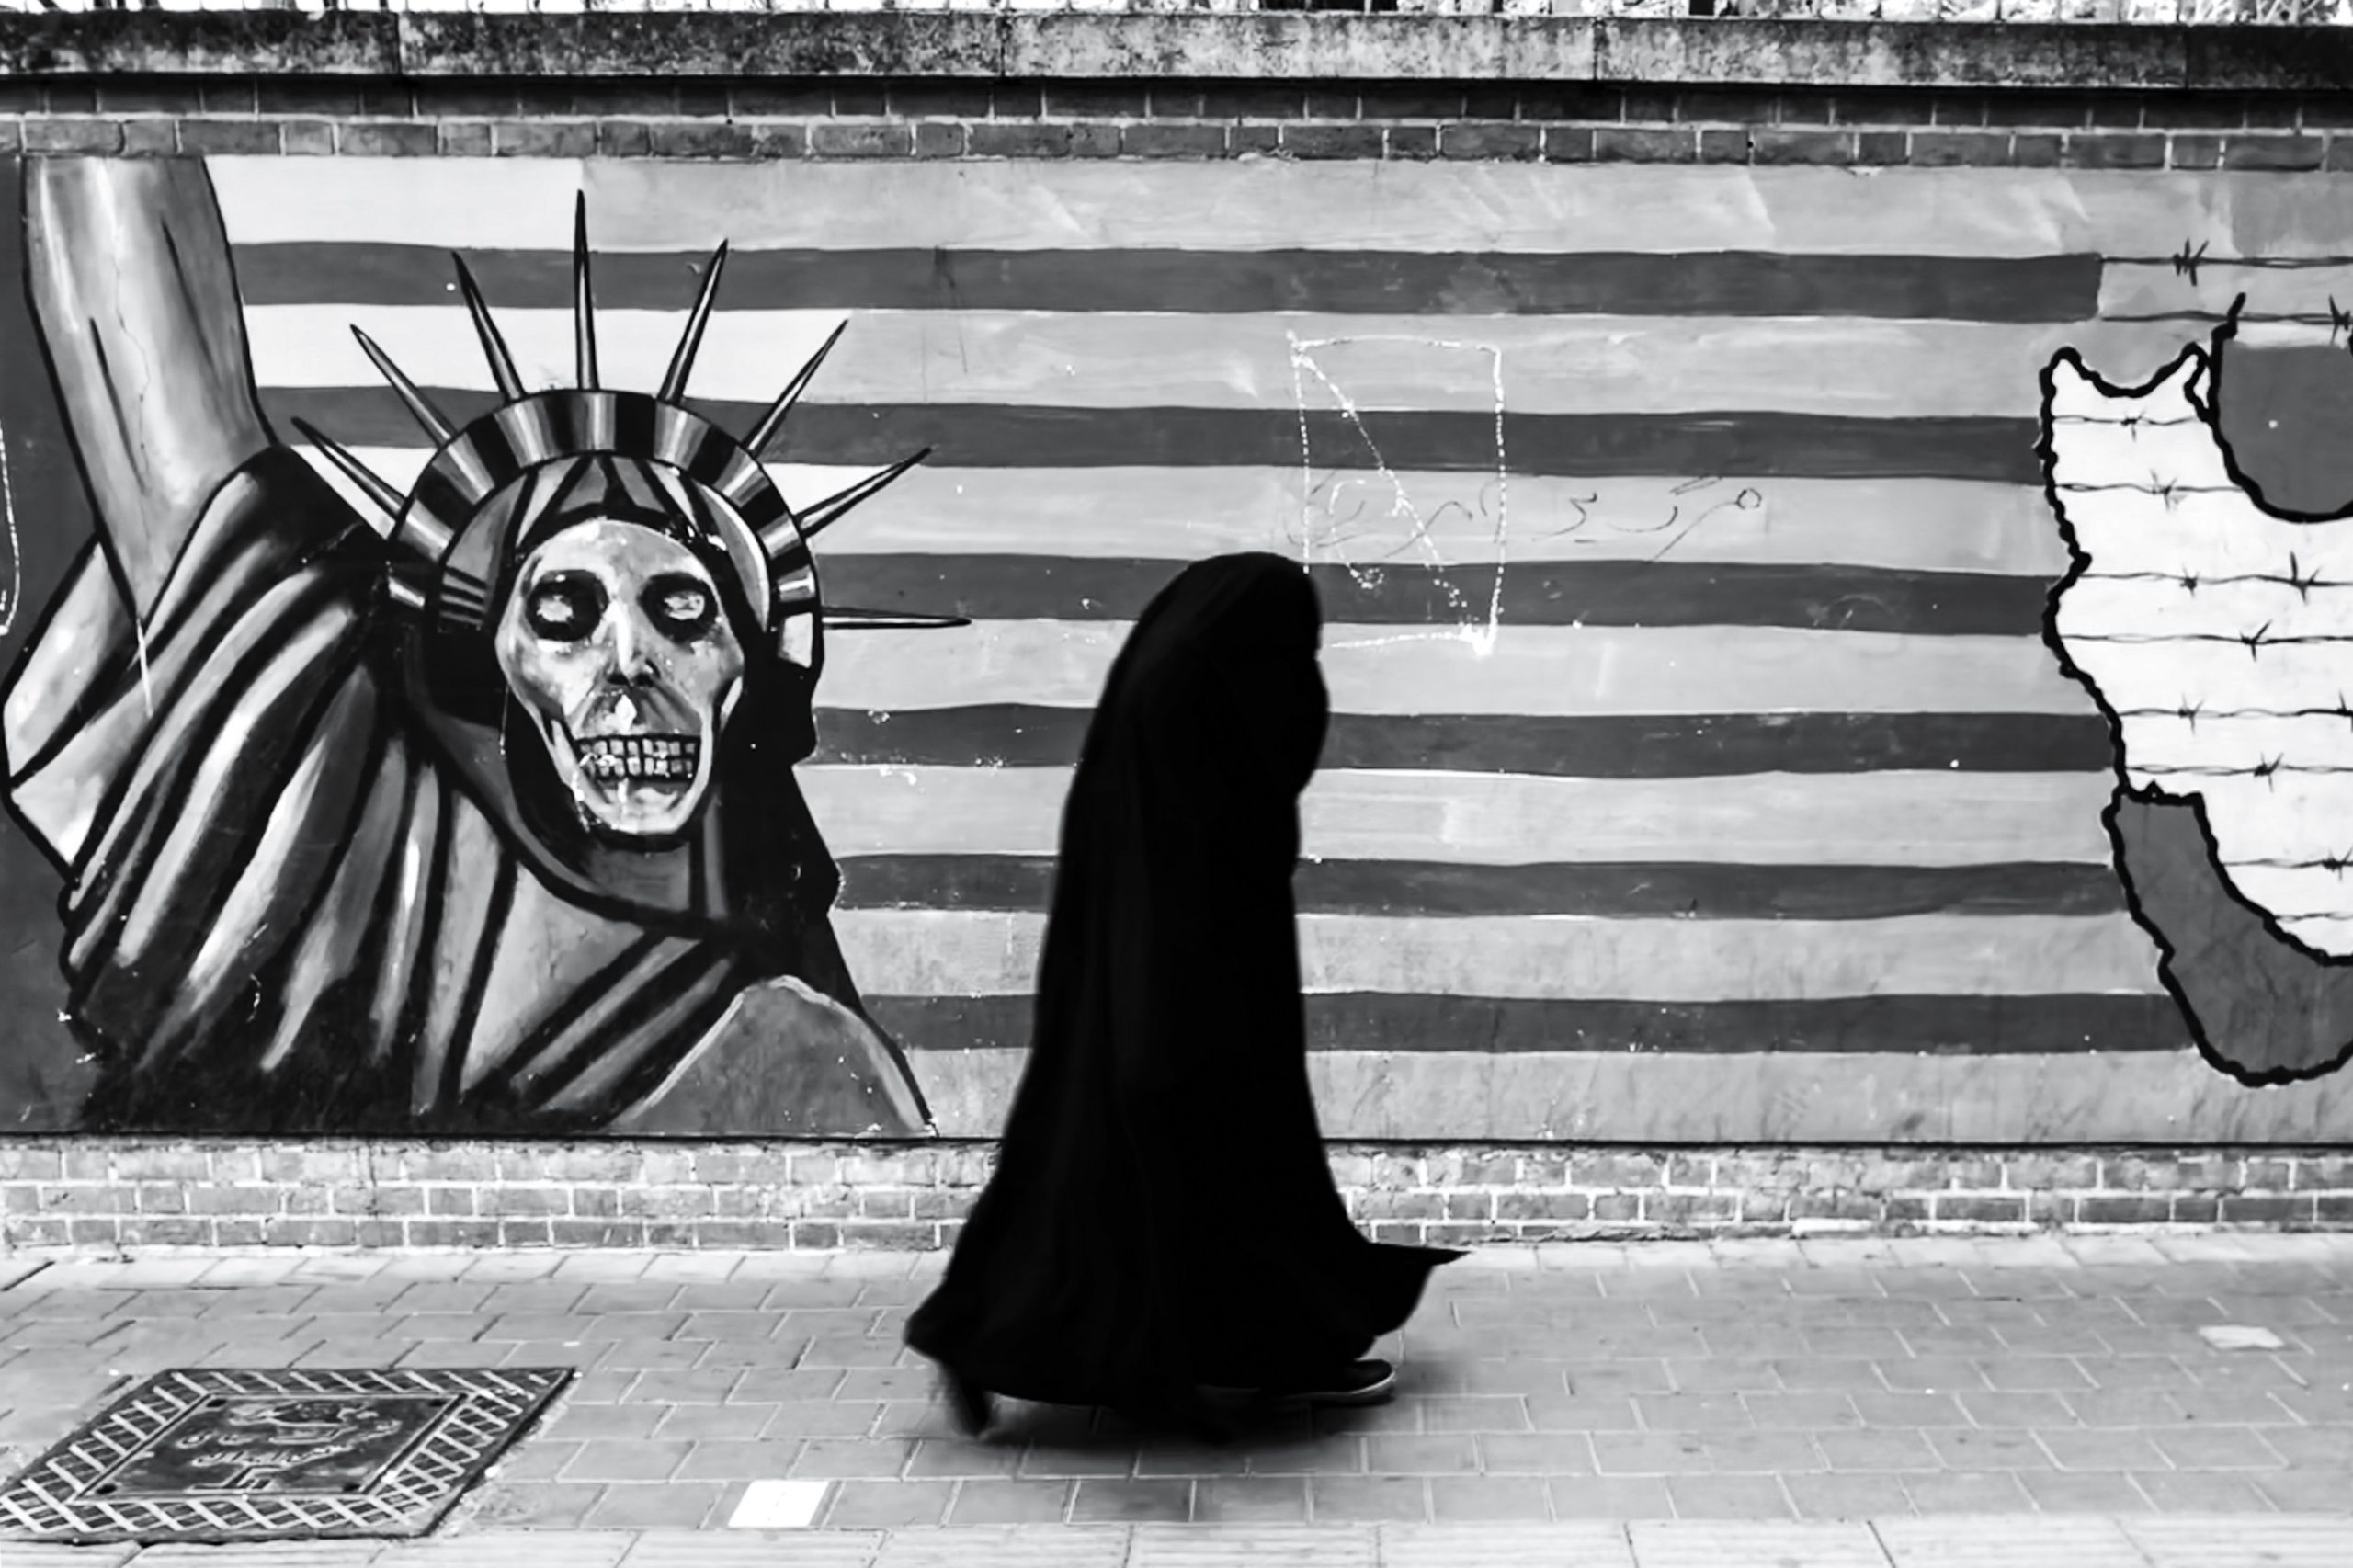 Muslim women walking by Statue of Liberty graffiti